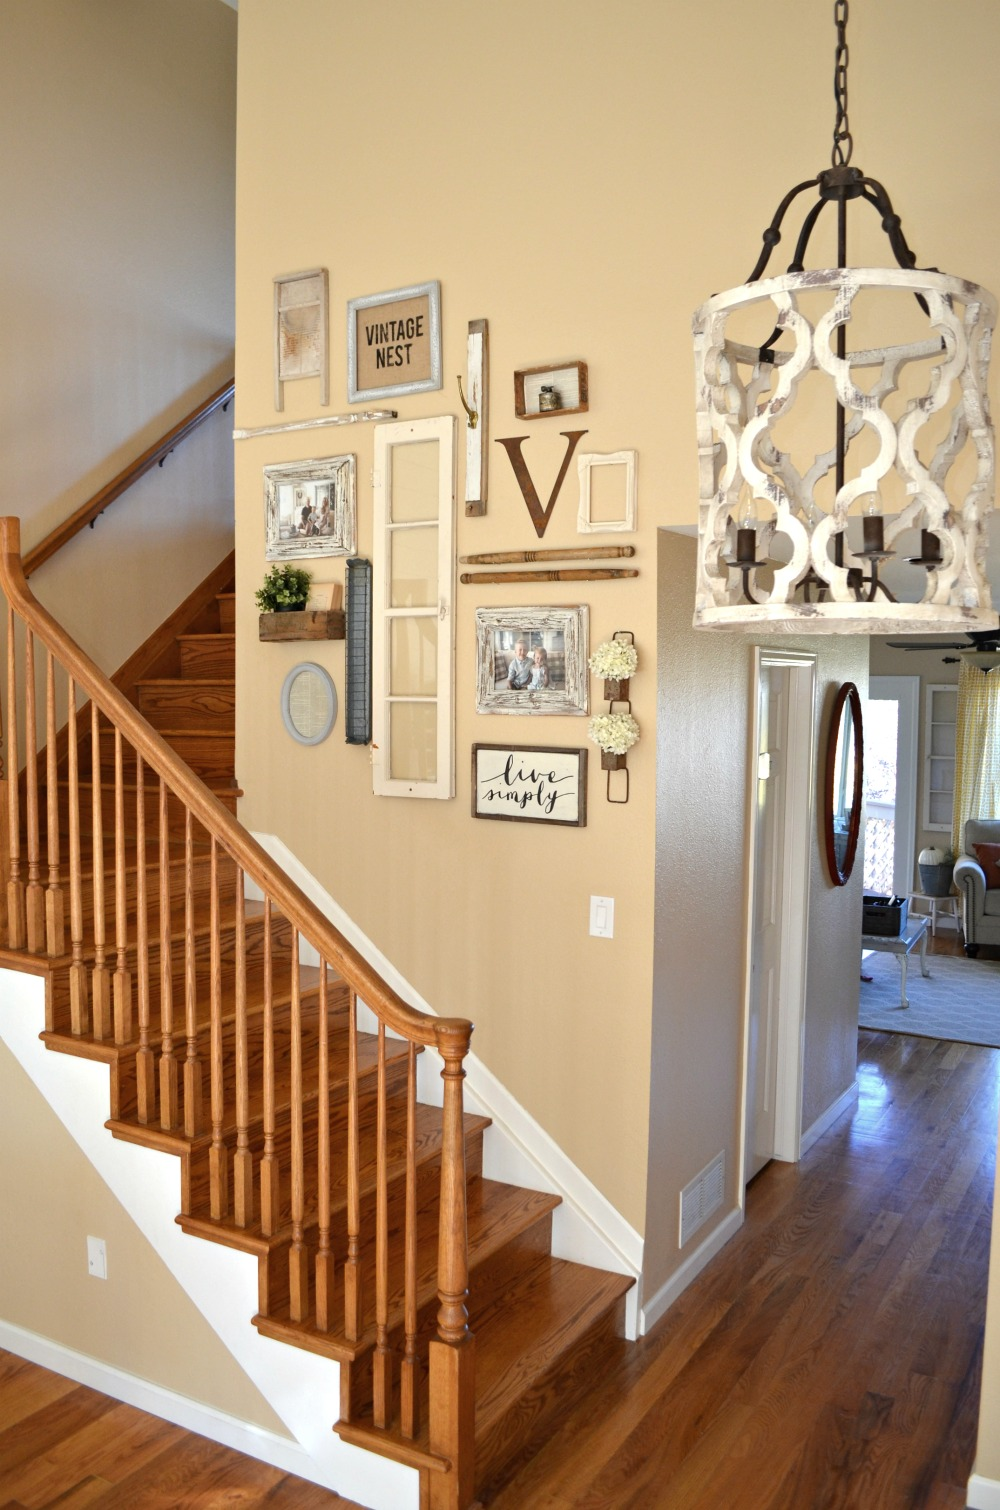 Staircase Gallery Wall & A Collection of Vintage Treasures